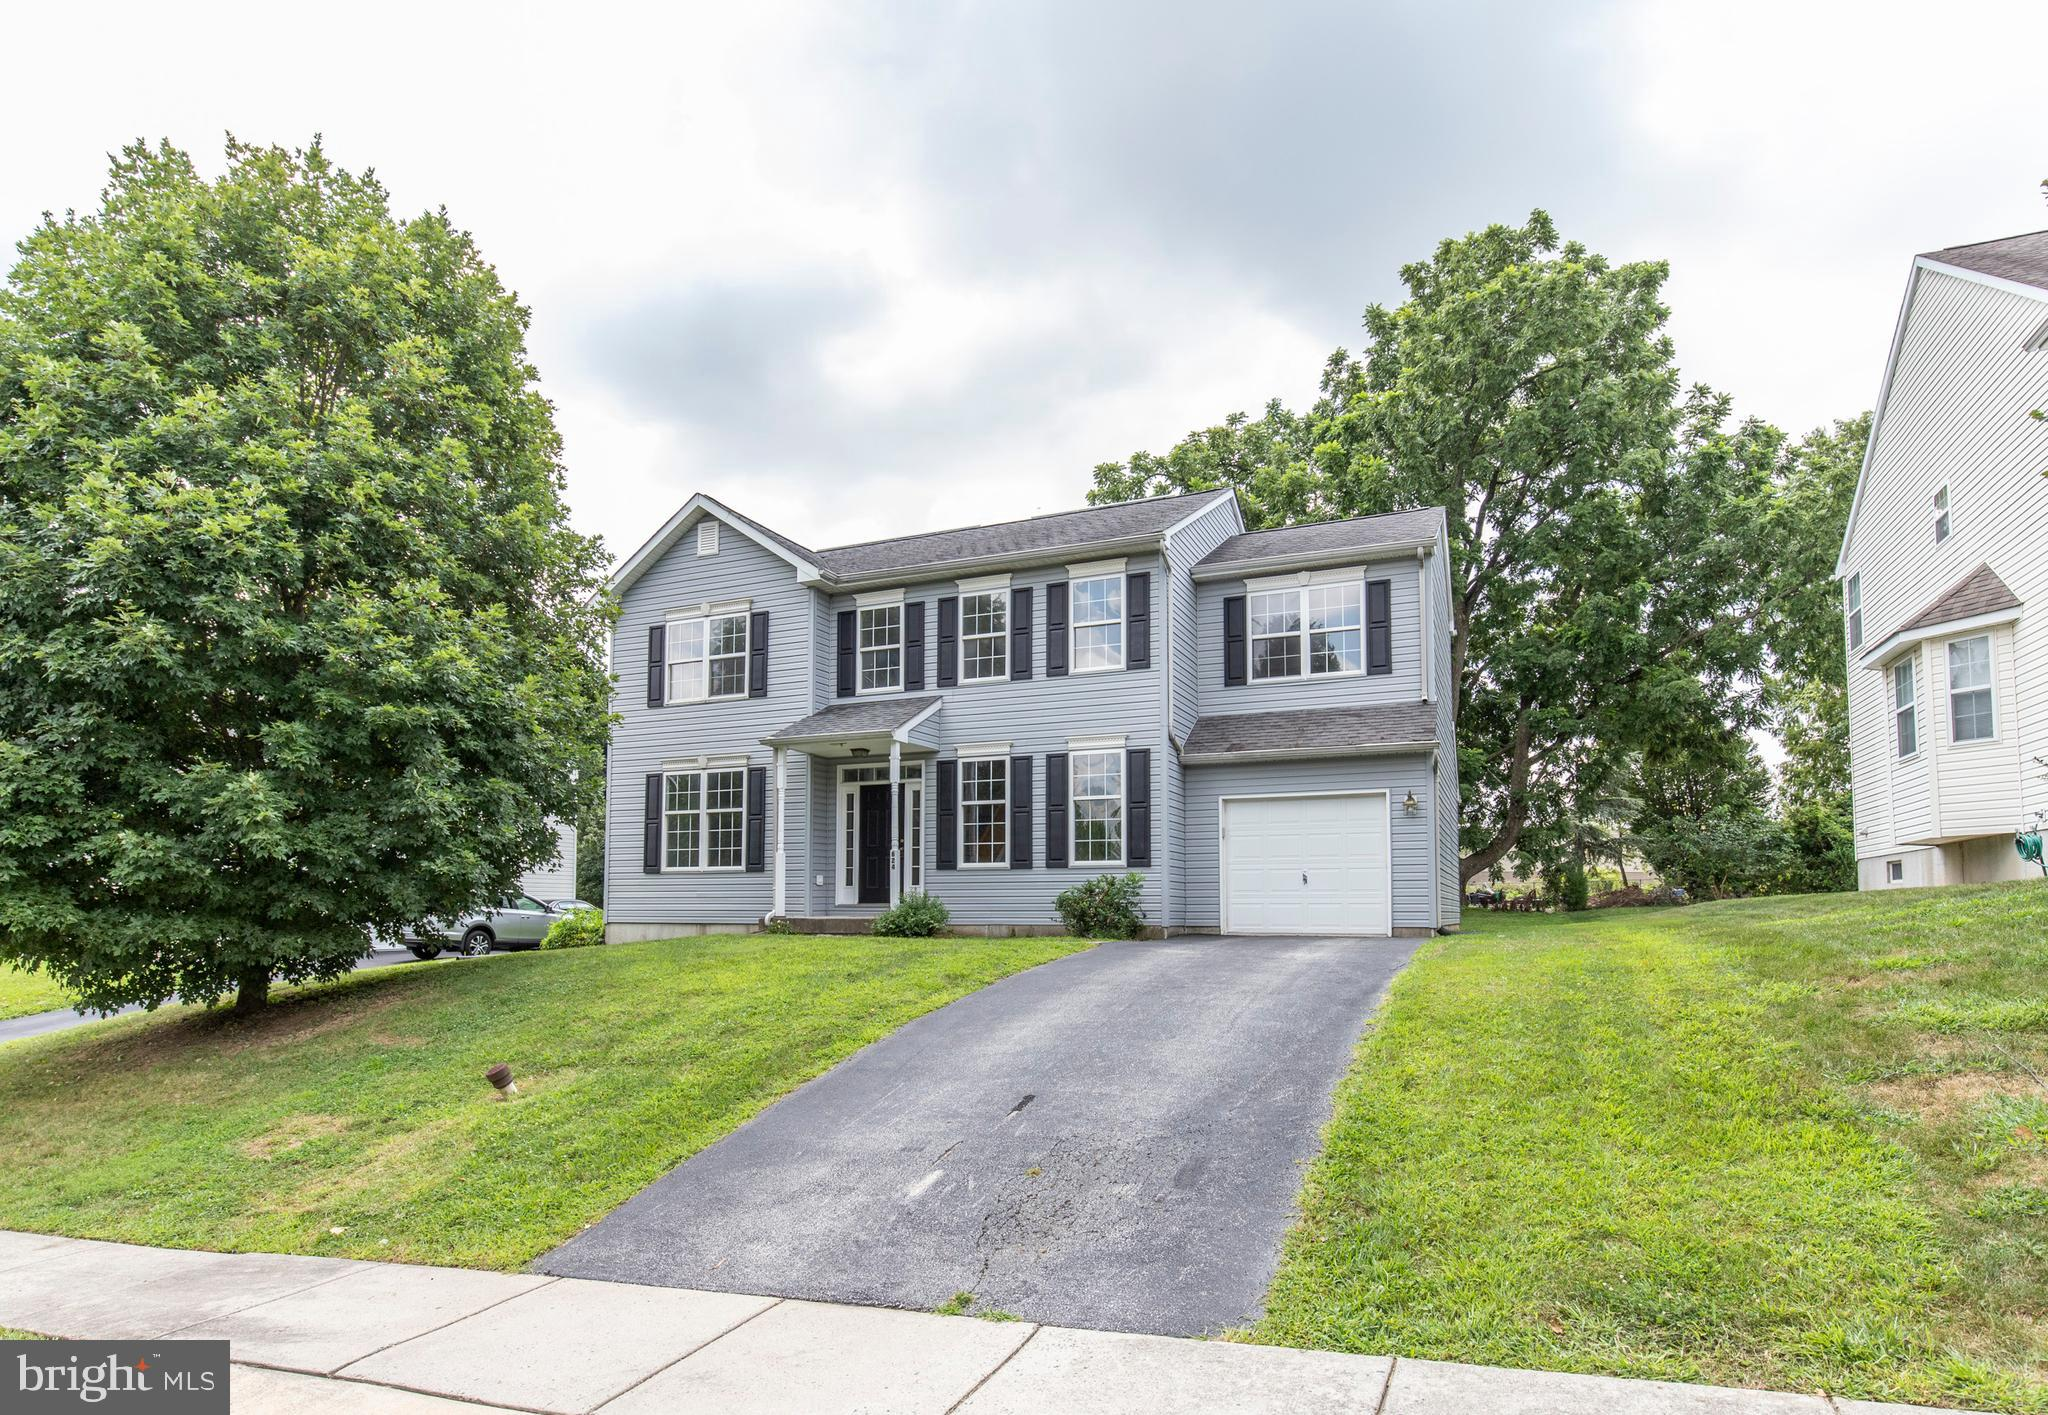 624 BARCLAY CIRCLE, SPRINGFIELD, PA 19064